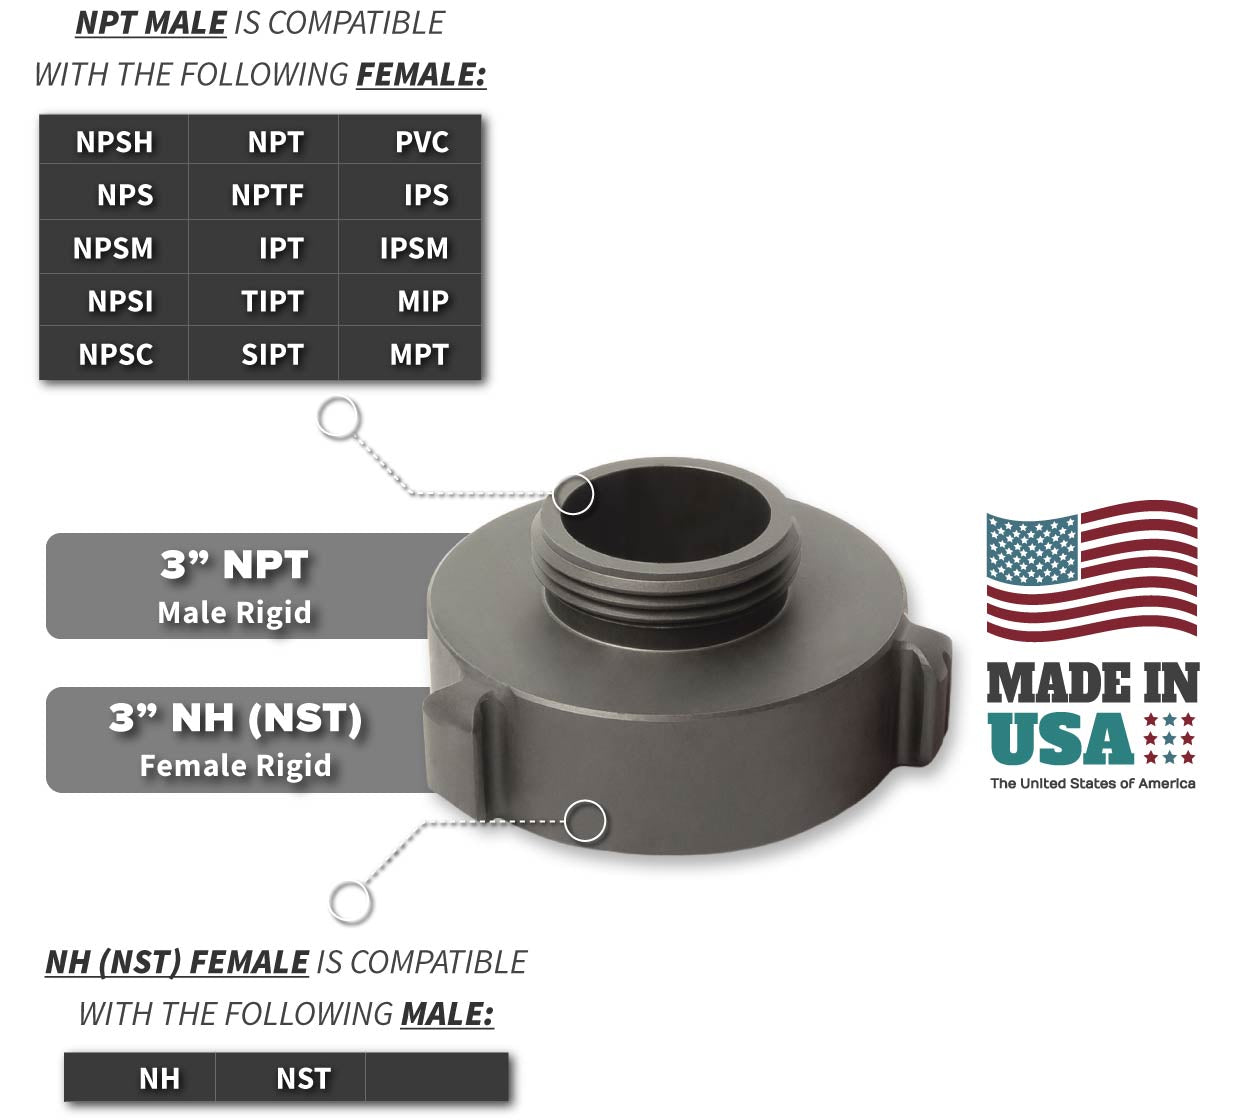 3 Inch NH-NST Female x 3 Inch NPT Male Compatibility Thread Chart